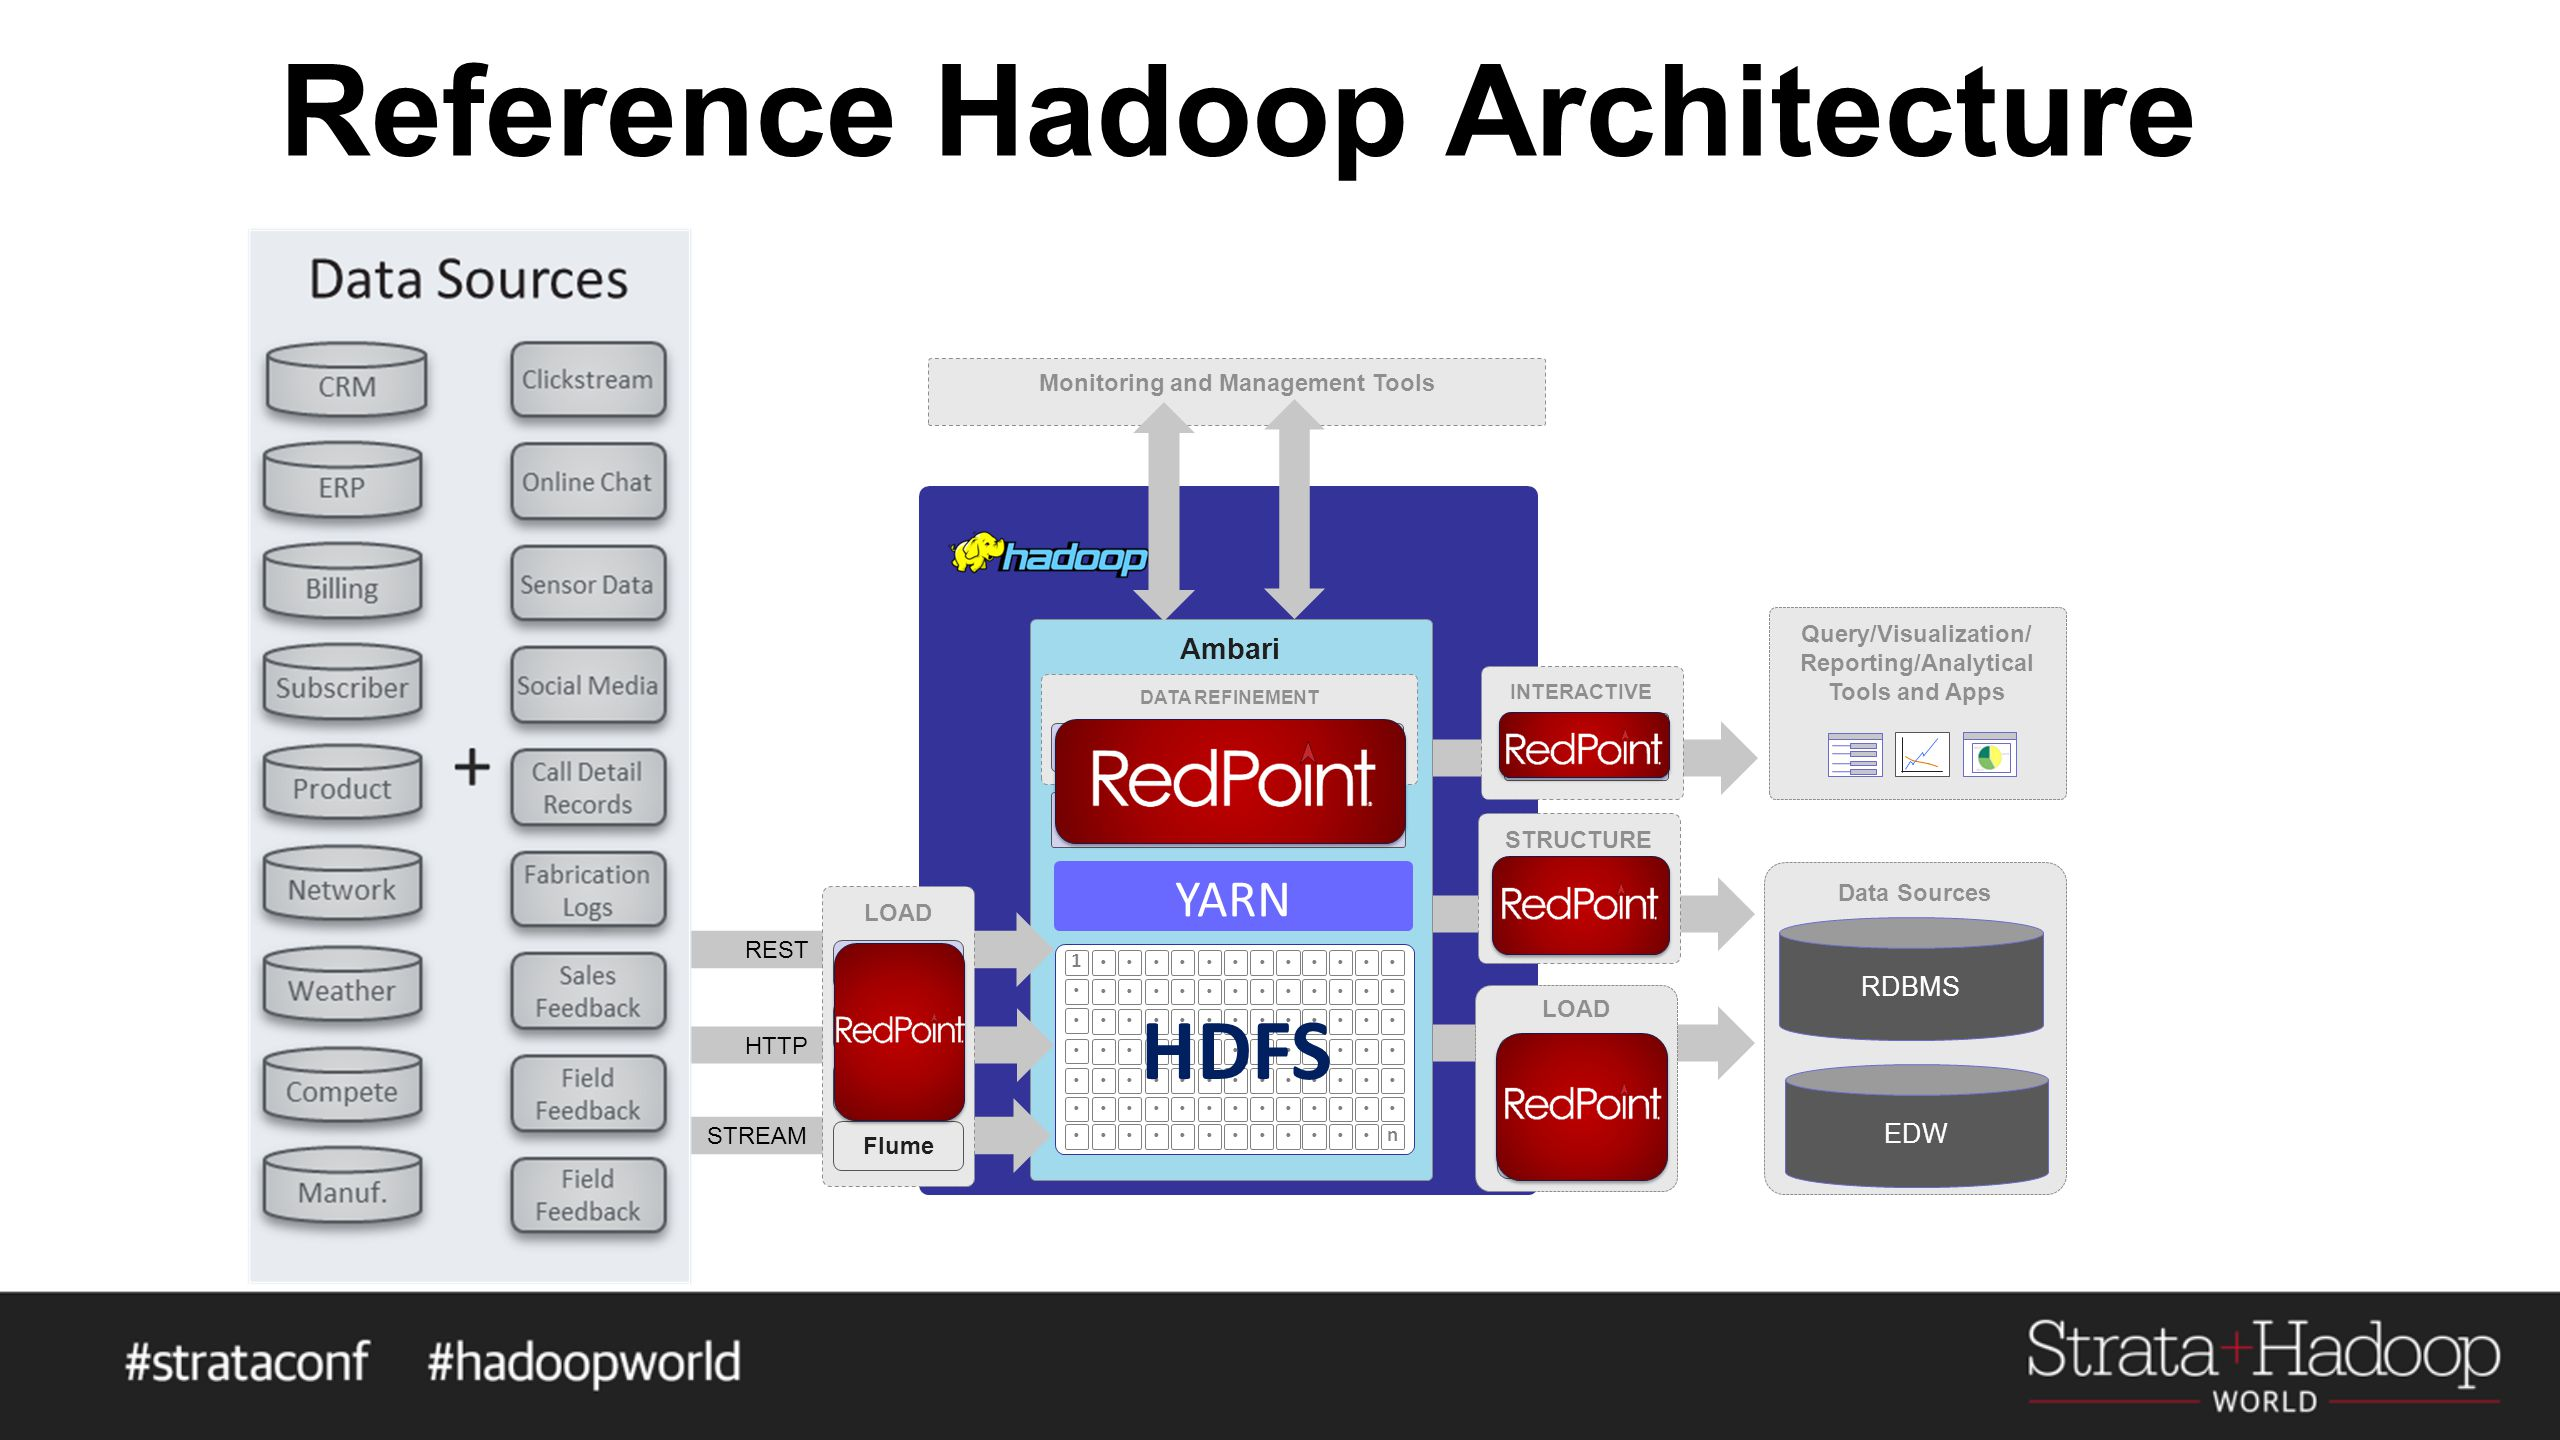 Reference Hadoop Architecture Monitoring and Management Tools Ambari MAPREDUCE REST DATA REFINEMENT HIVE PIG HTTP STREAM STRUCTURE HCATALOG (metadata services) Query/Visualization/ Reporting/Analytical Tools and Apps Data Sources RDBMS EDW INTERACTIVE HIVE Server2 LOAD SQOOP WebHDFS Flume NFS LOAD SQOOP/Hive Web HDFS YARN       n 1        HDFS